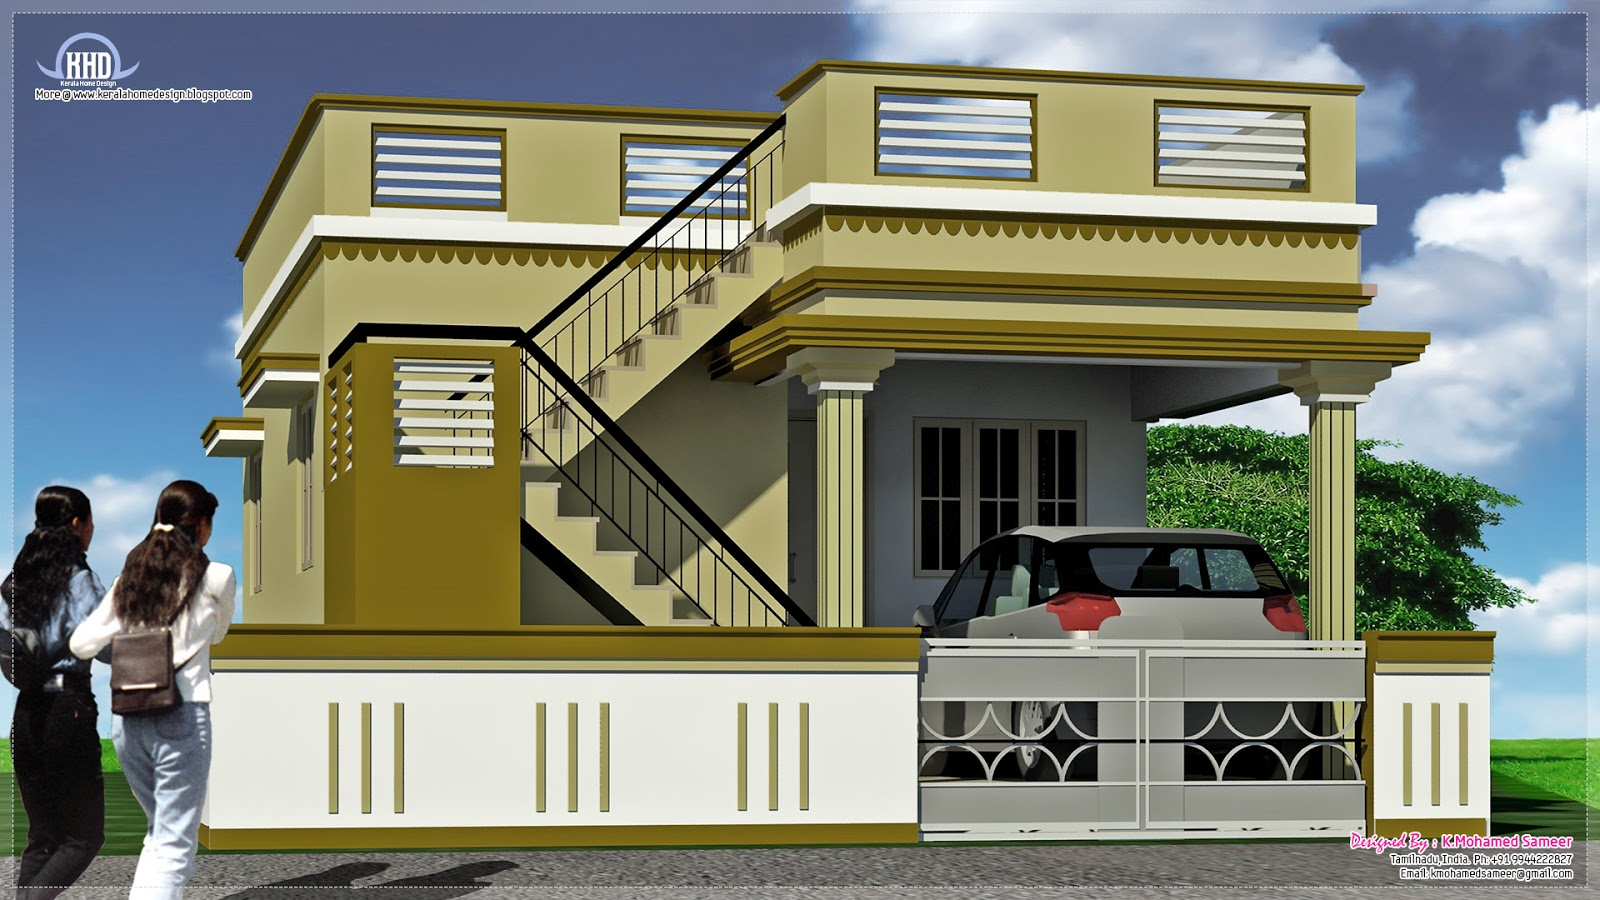 2 South Indian House Exterior Designs House Design Plans